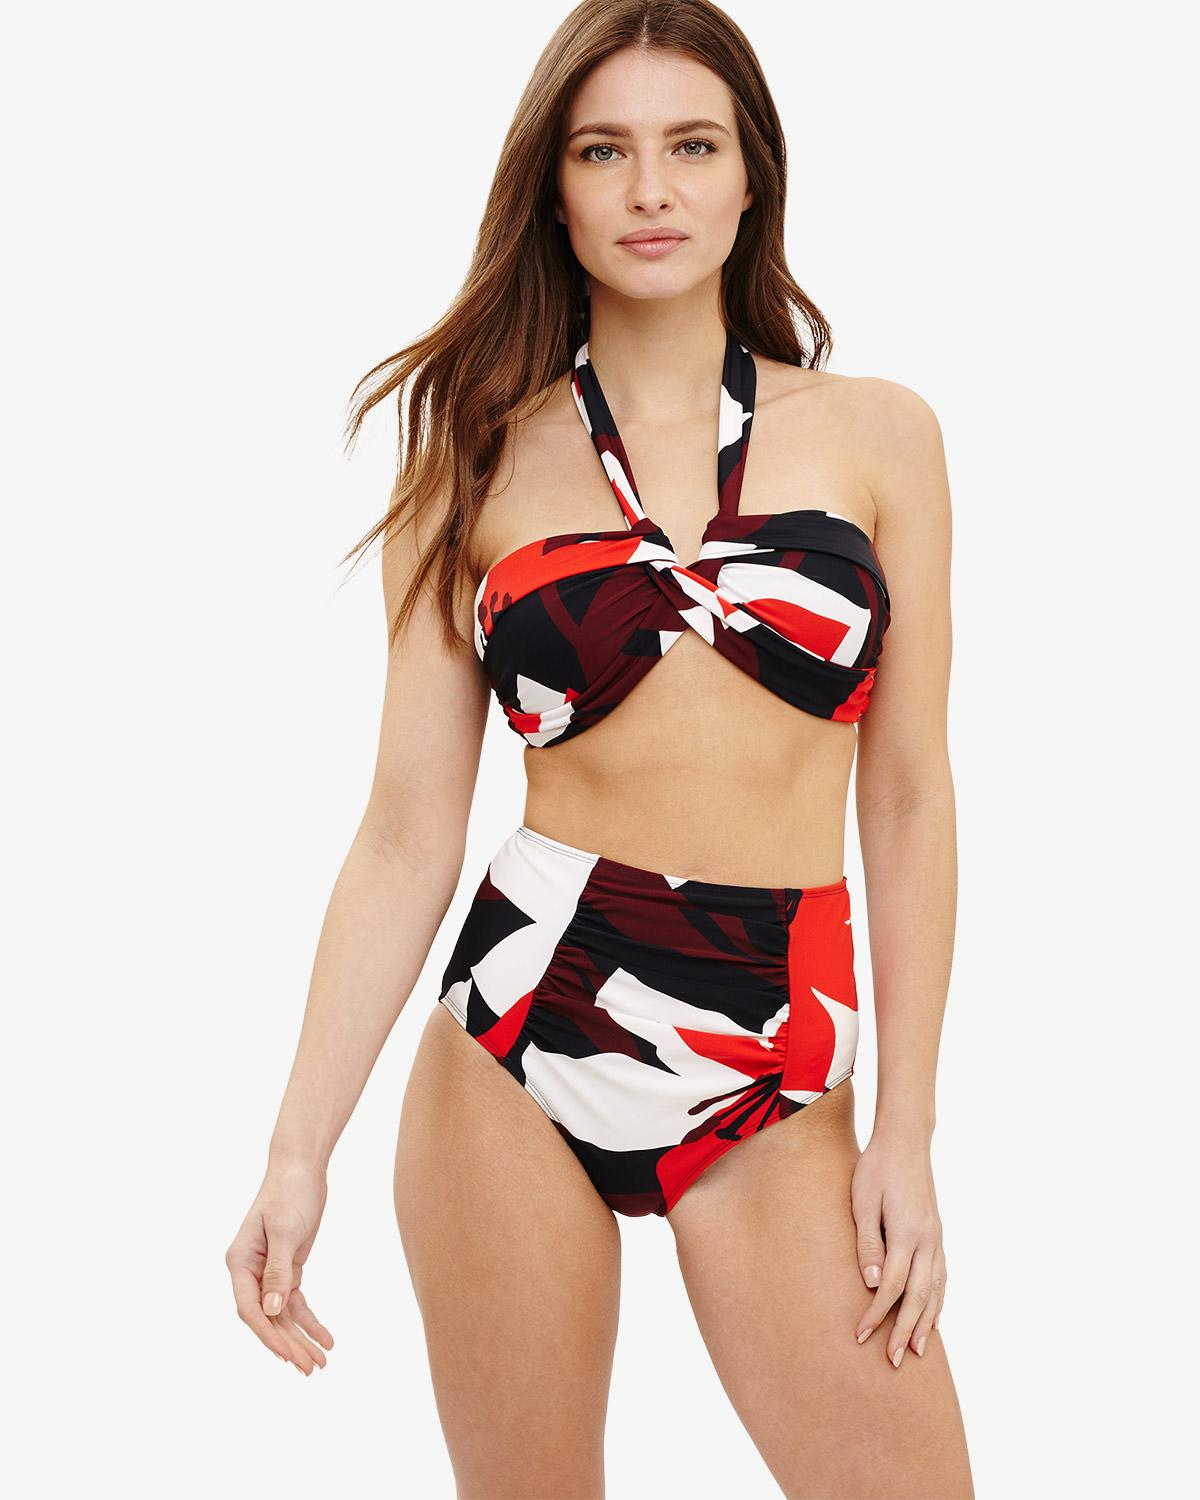 ccb83bcd65 Phase Eight Multi-coloured Lana Floral Print Bikini Top in Red - Lyst